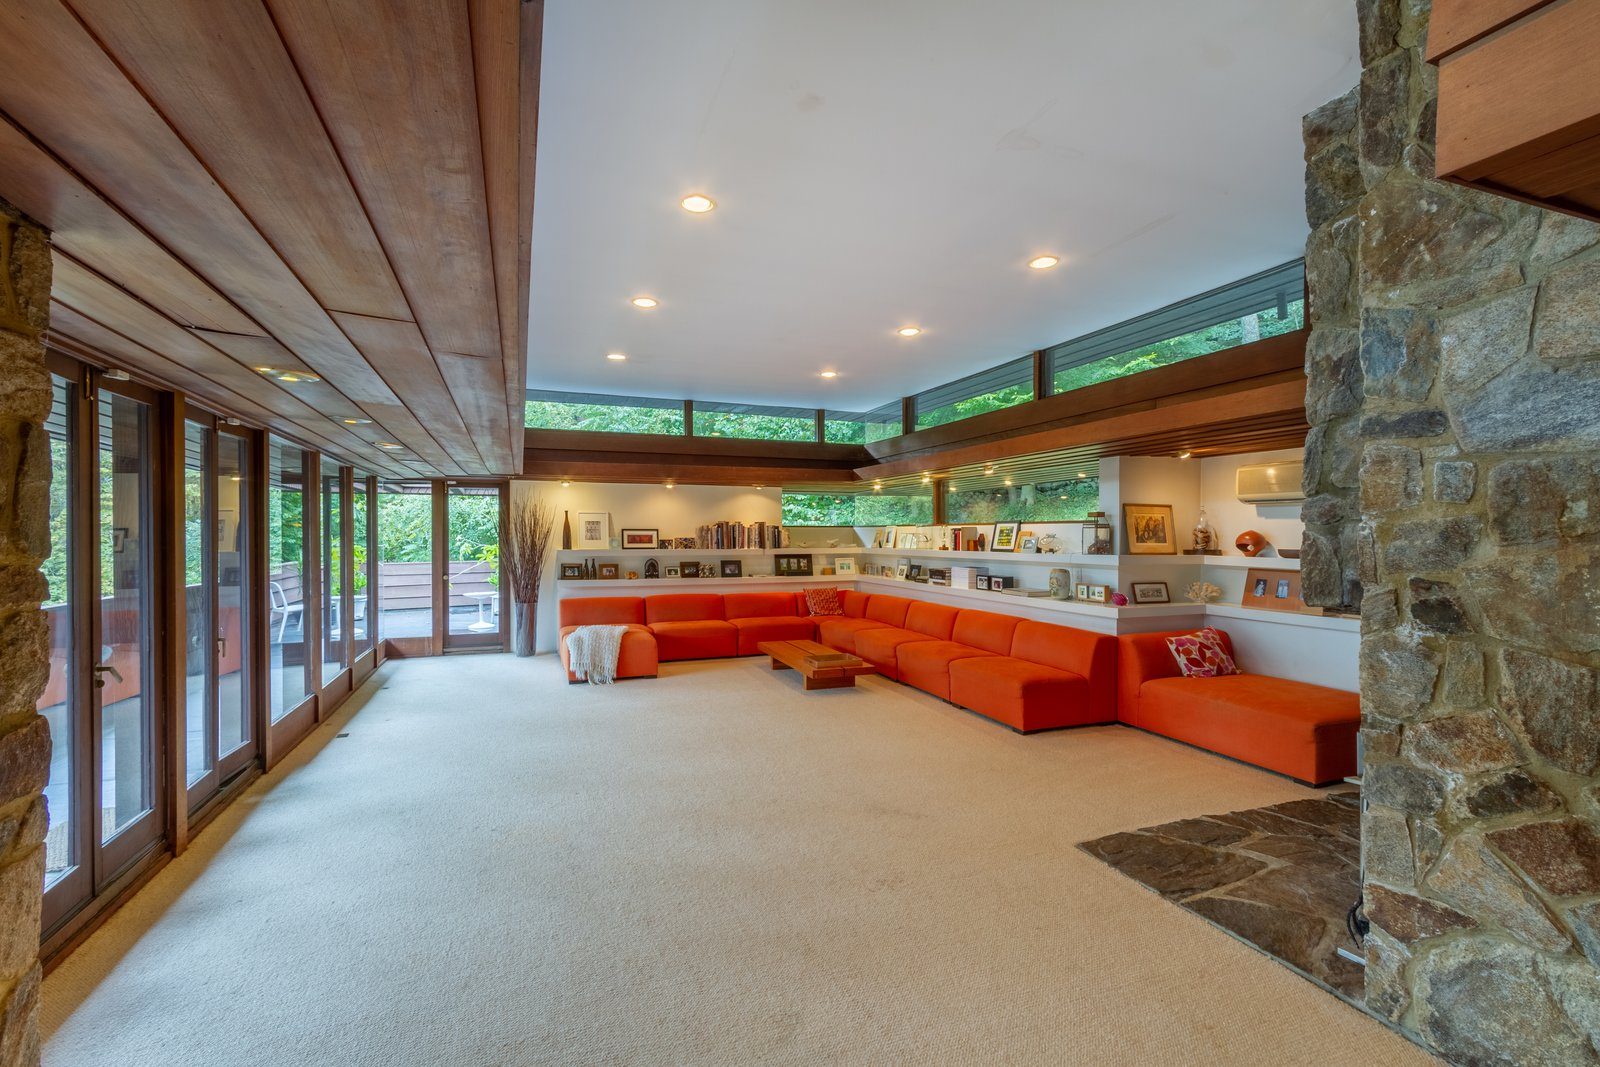 This Nearly Forgotten Connecticut Retreat by a Taliesin Fellow Hits the Market for $625K